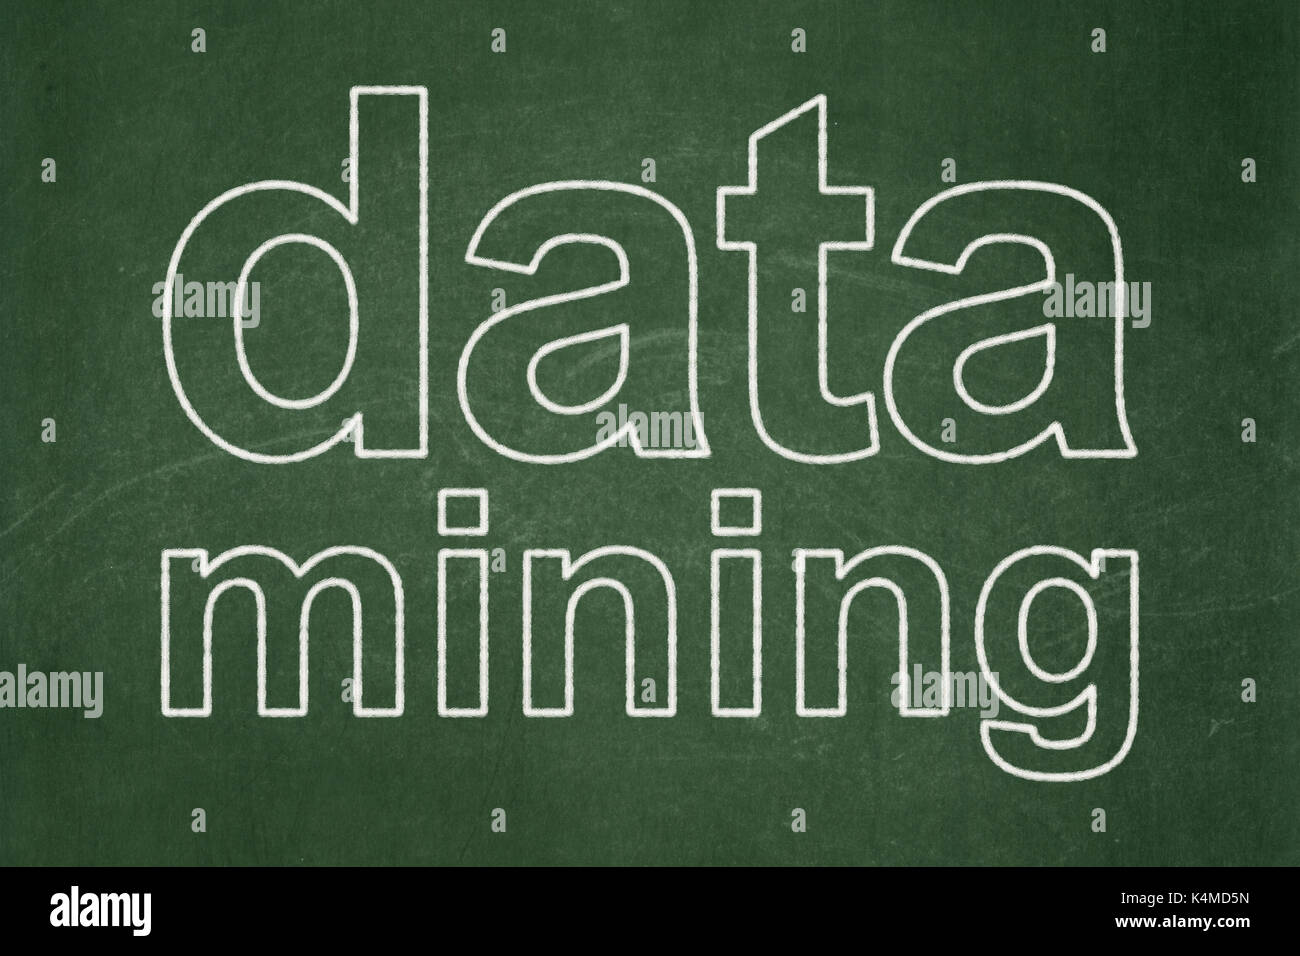 the concept of text mining Going to repeat some of the key concepts that are relevant for text mining but they're at the high level and they also explain the relation between text retrieval and text mining.